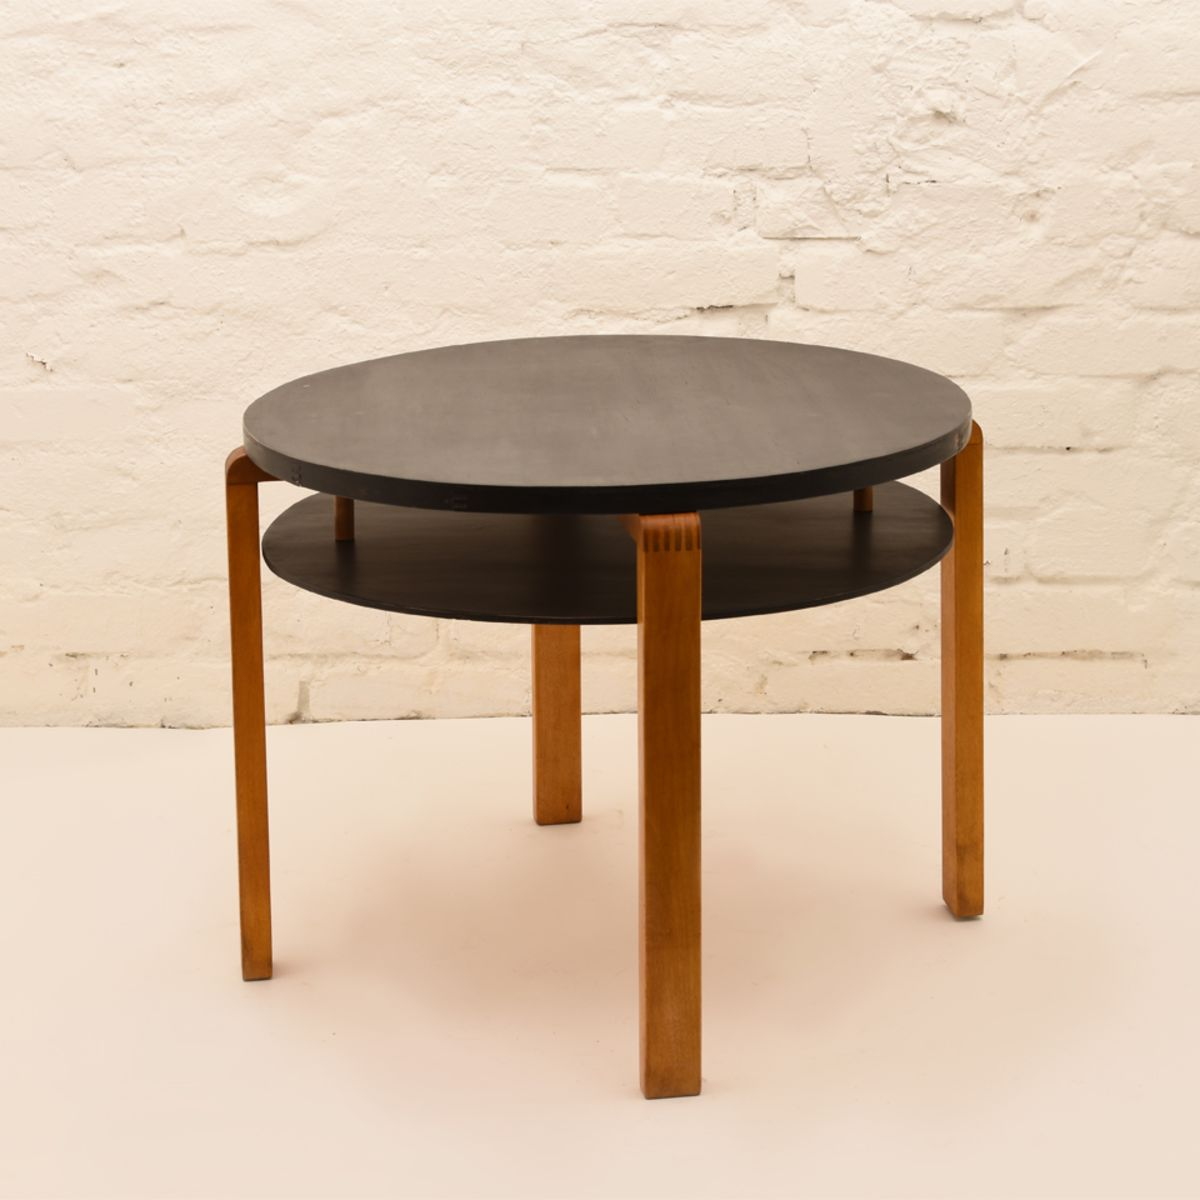 Alvar-Aalto_Club-Table-907